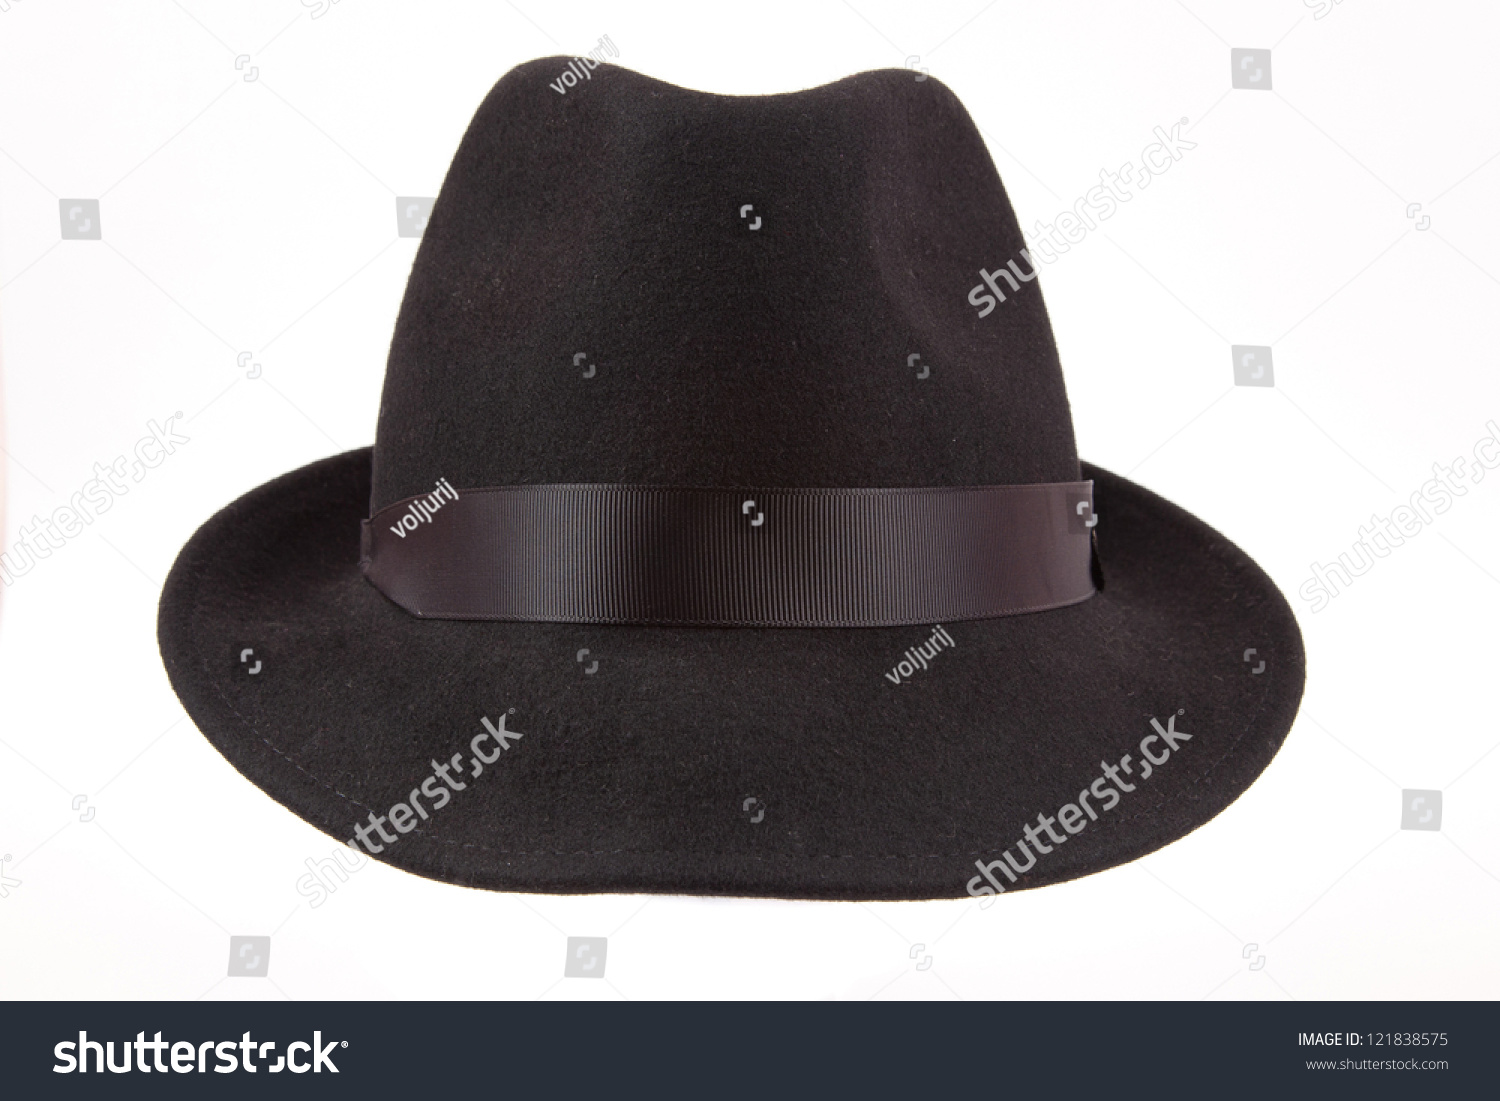 men's hat on a white background #121838575